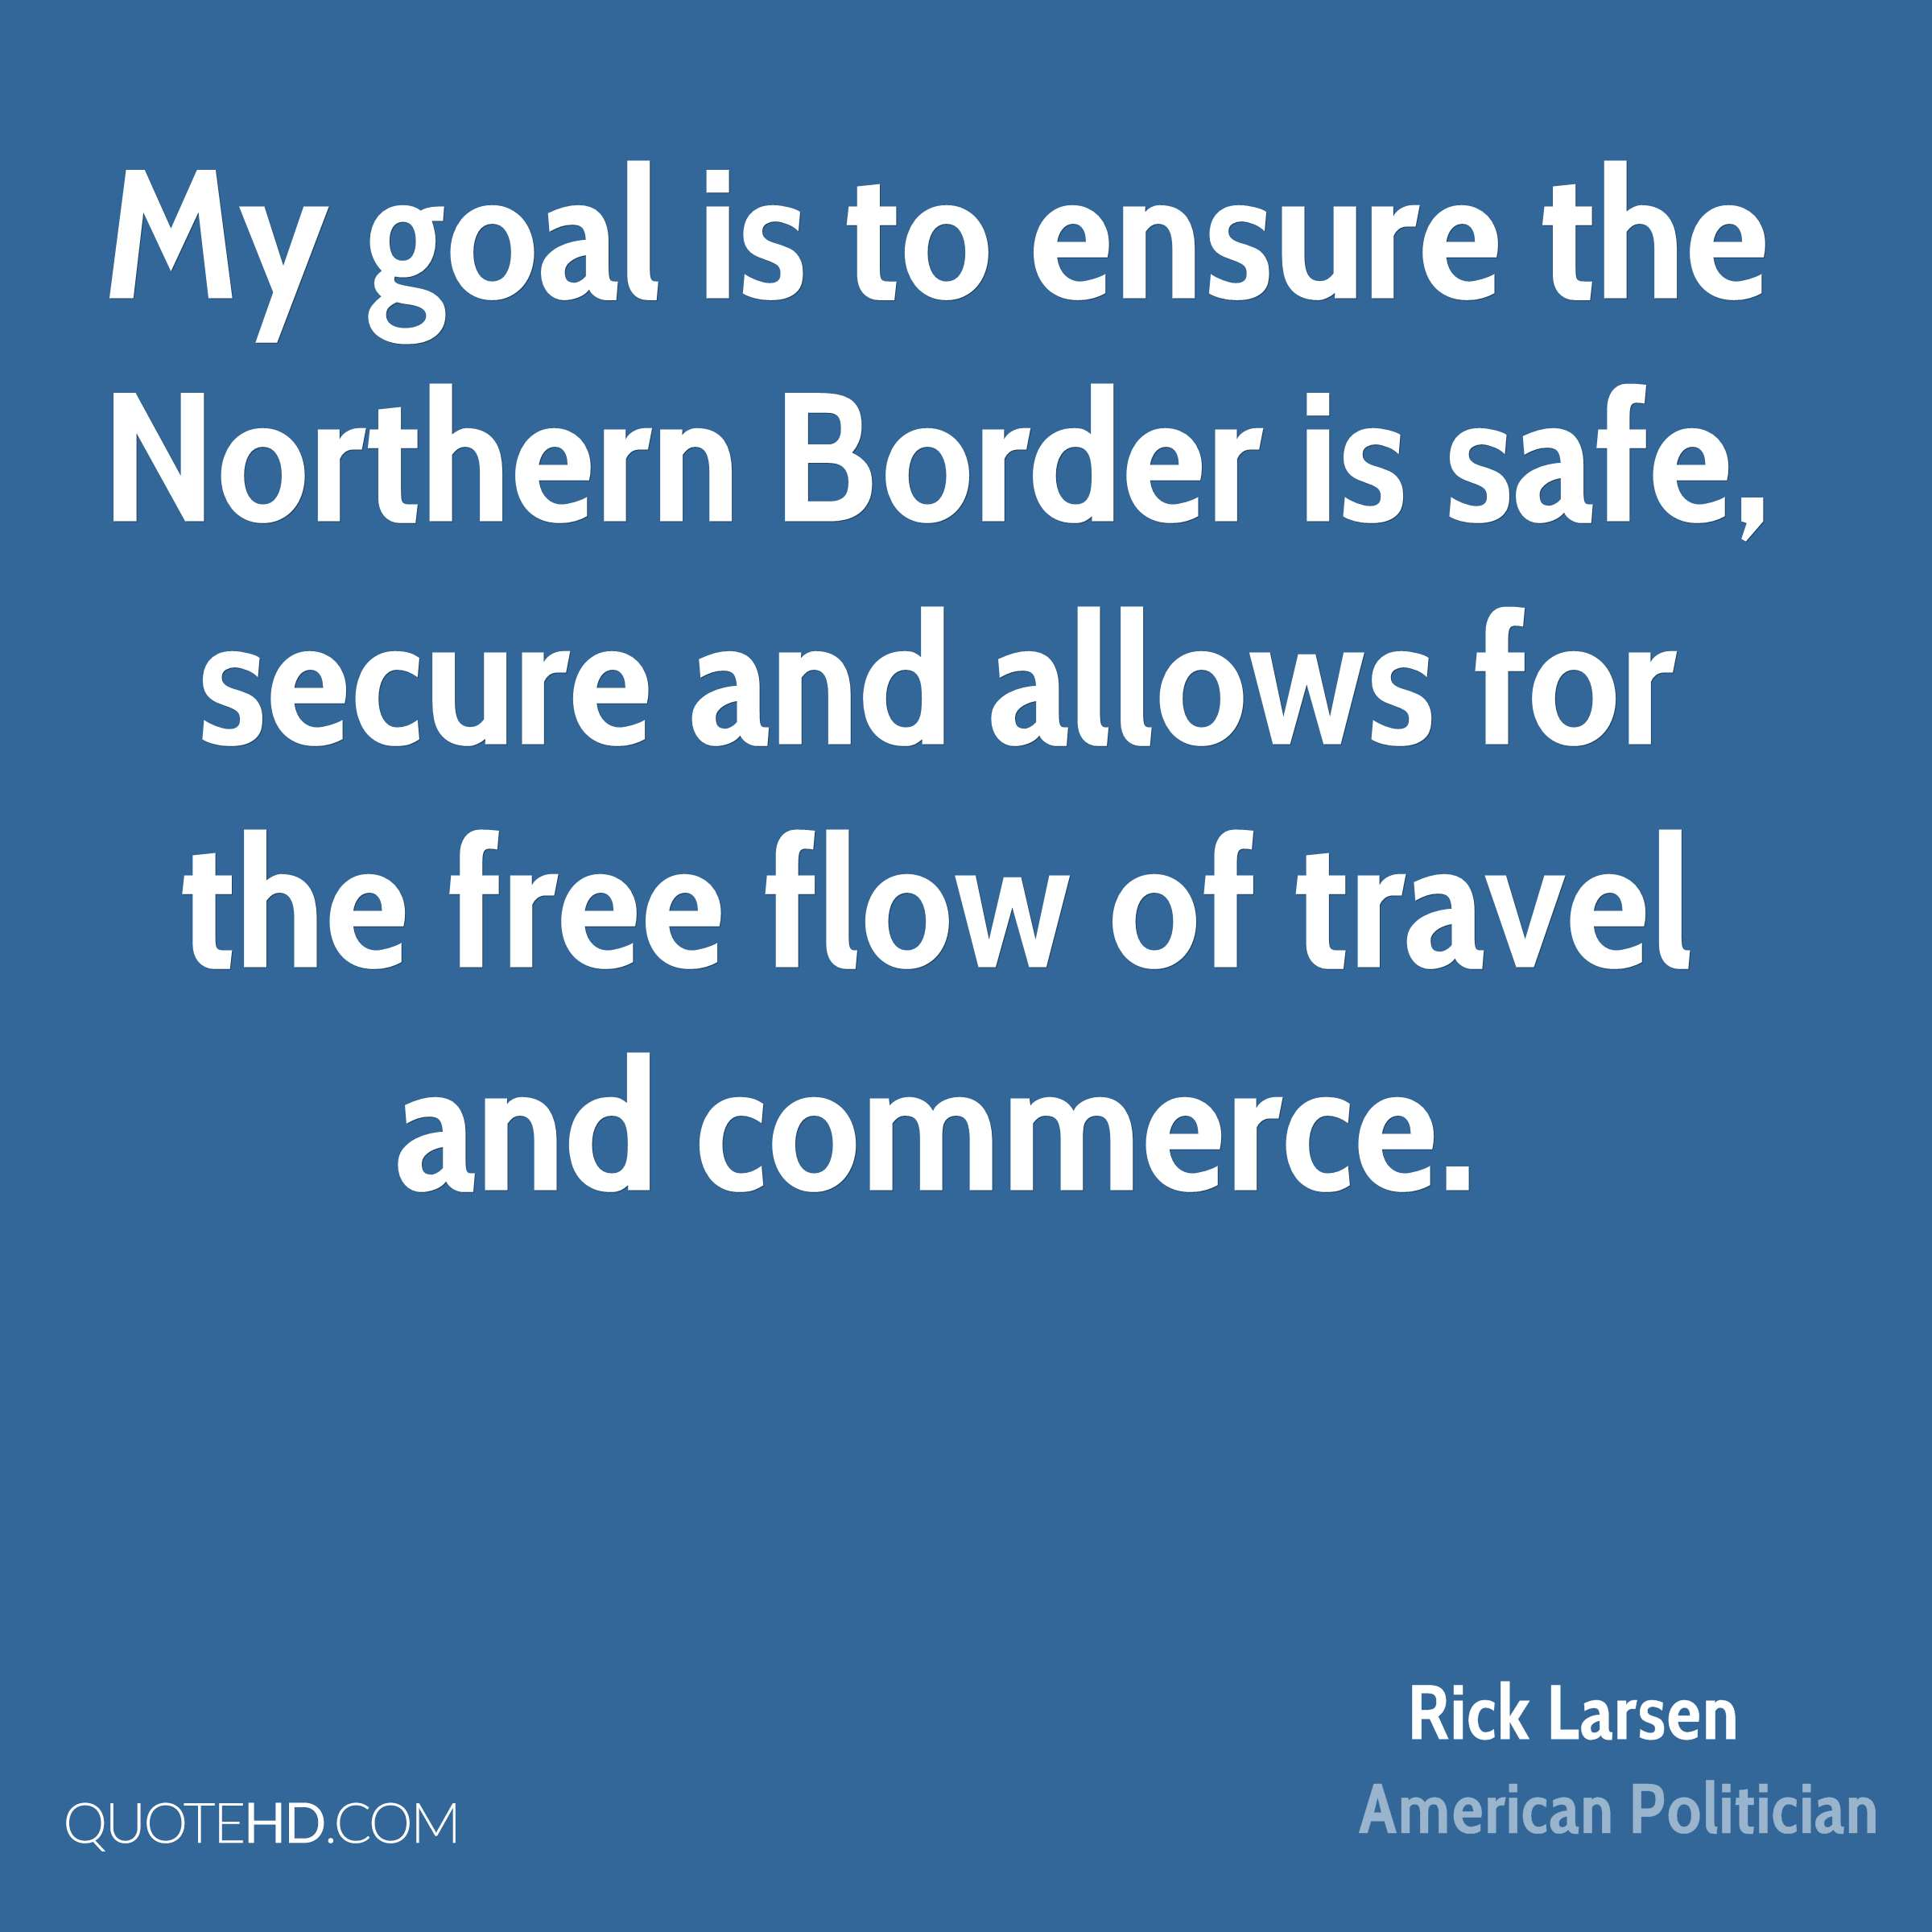 My goal is to ensure the Northern Border is safe, secure and allows for the free flow of travel and commerce.